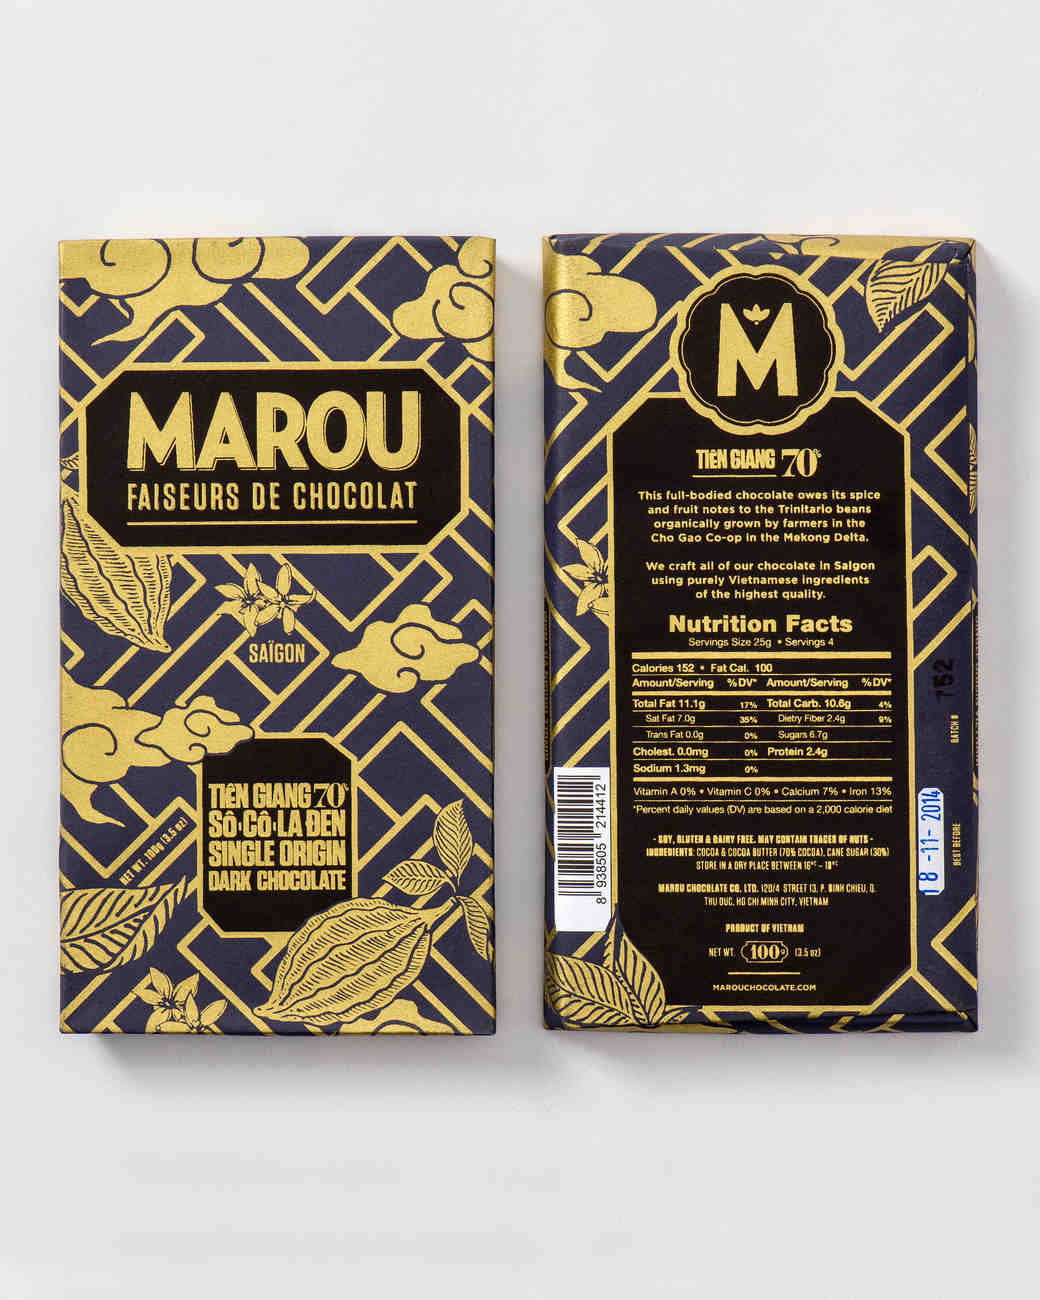 marou-chocolate-suitessweets-0315.jpg